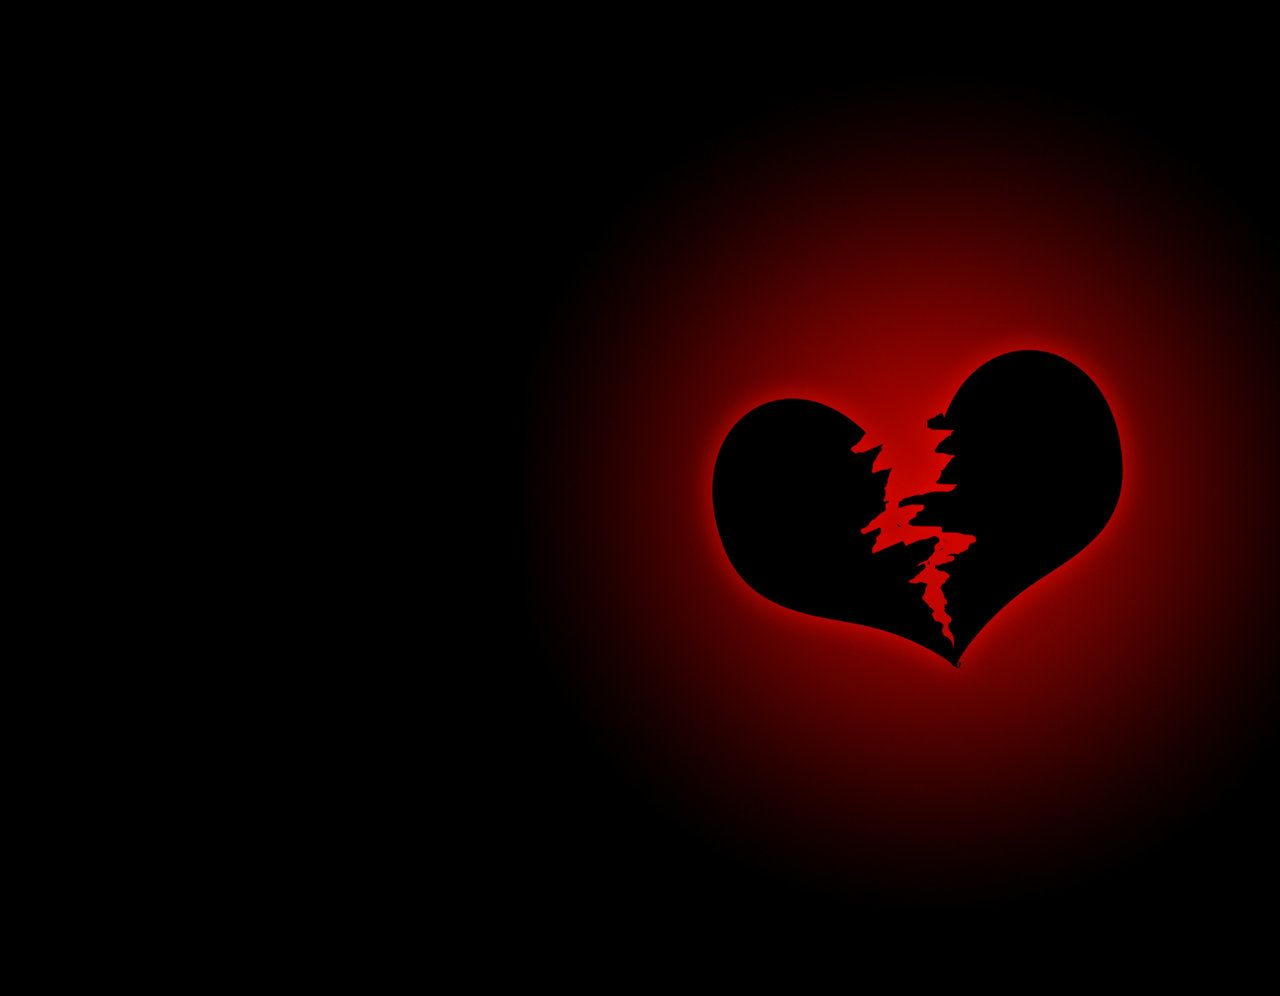 Broken hearts wallpaper #97985 at Love Wallpapers 1080p ...